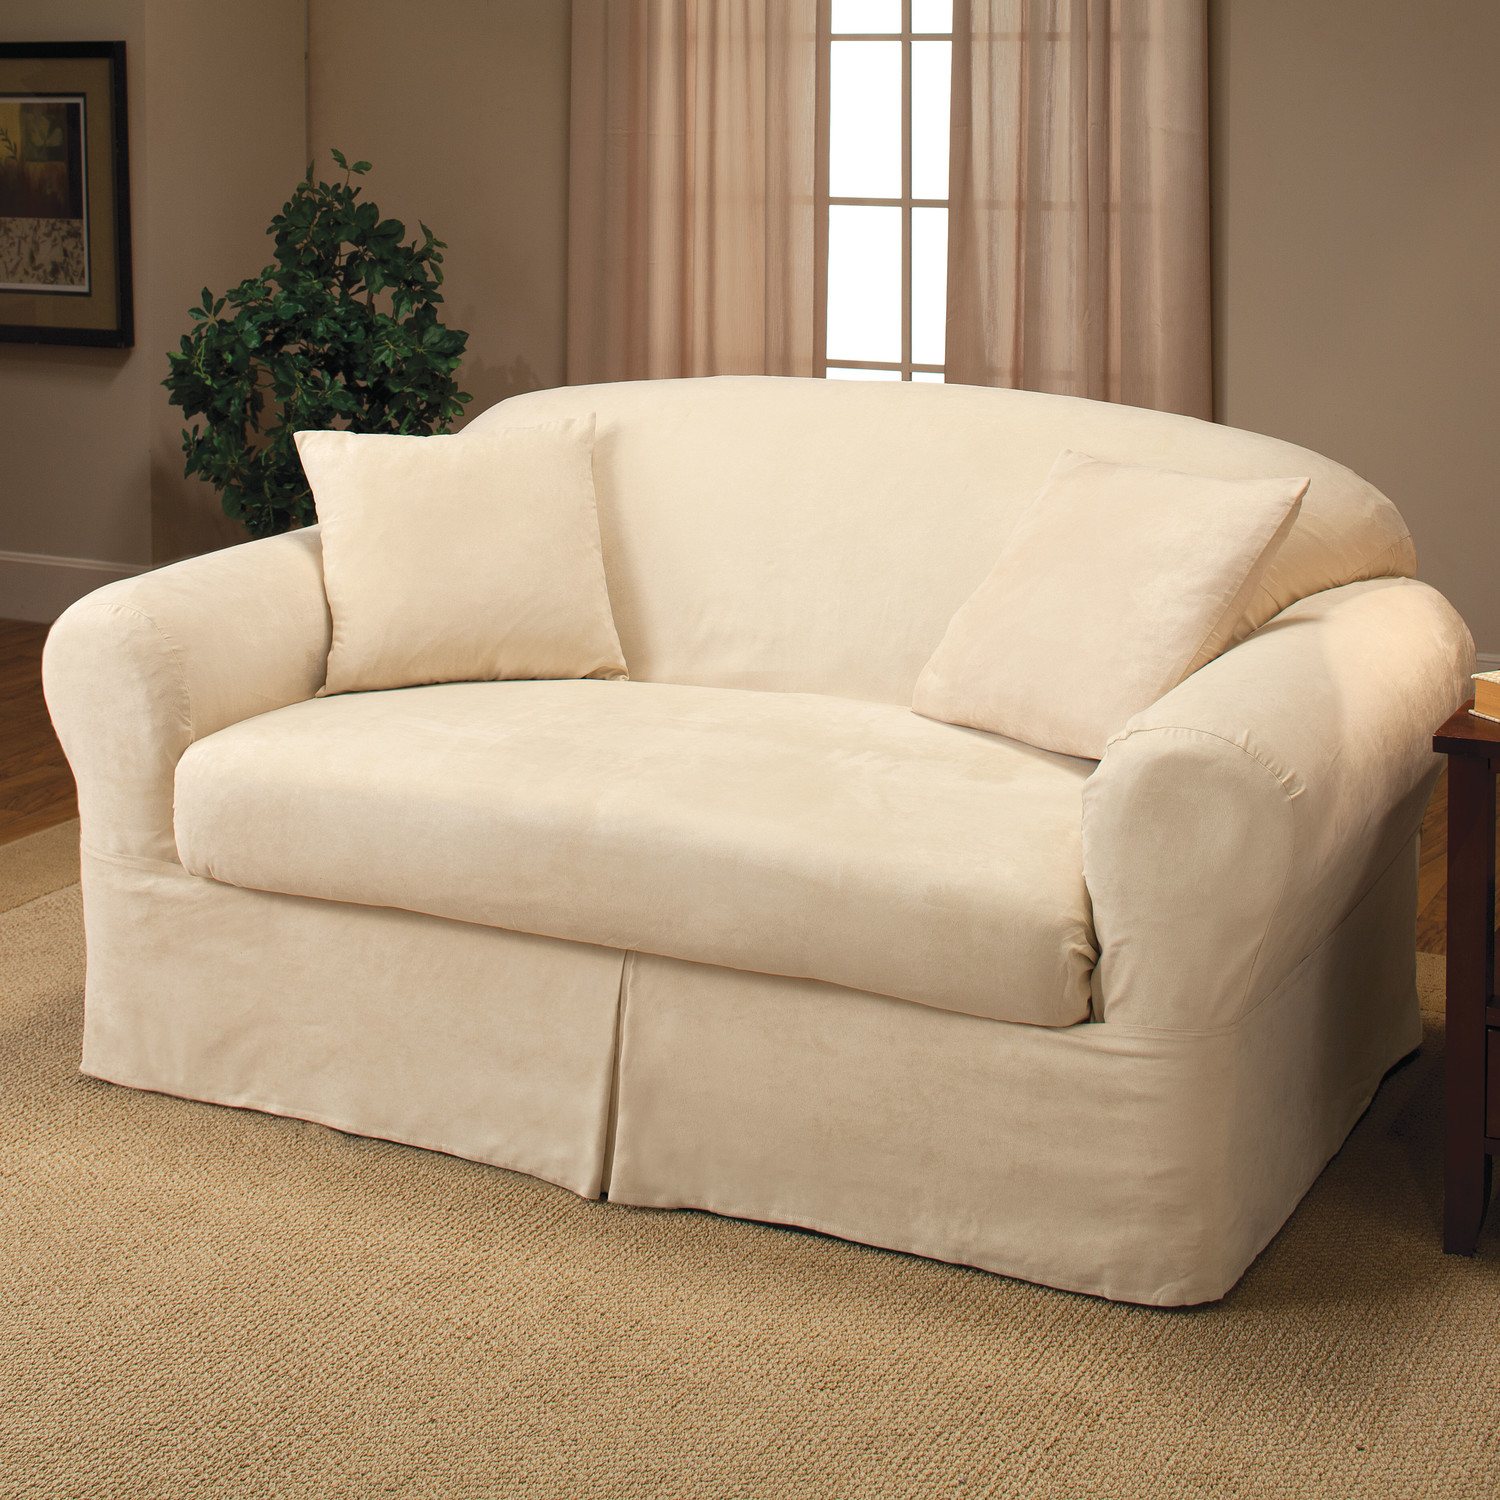 loveseat sofa cover bed and 2 in 1 love seat slip covers for stunning outlook the living